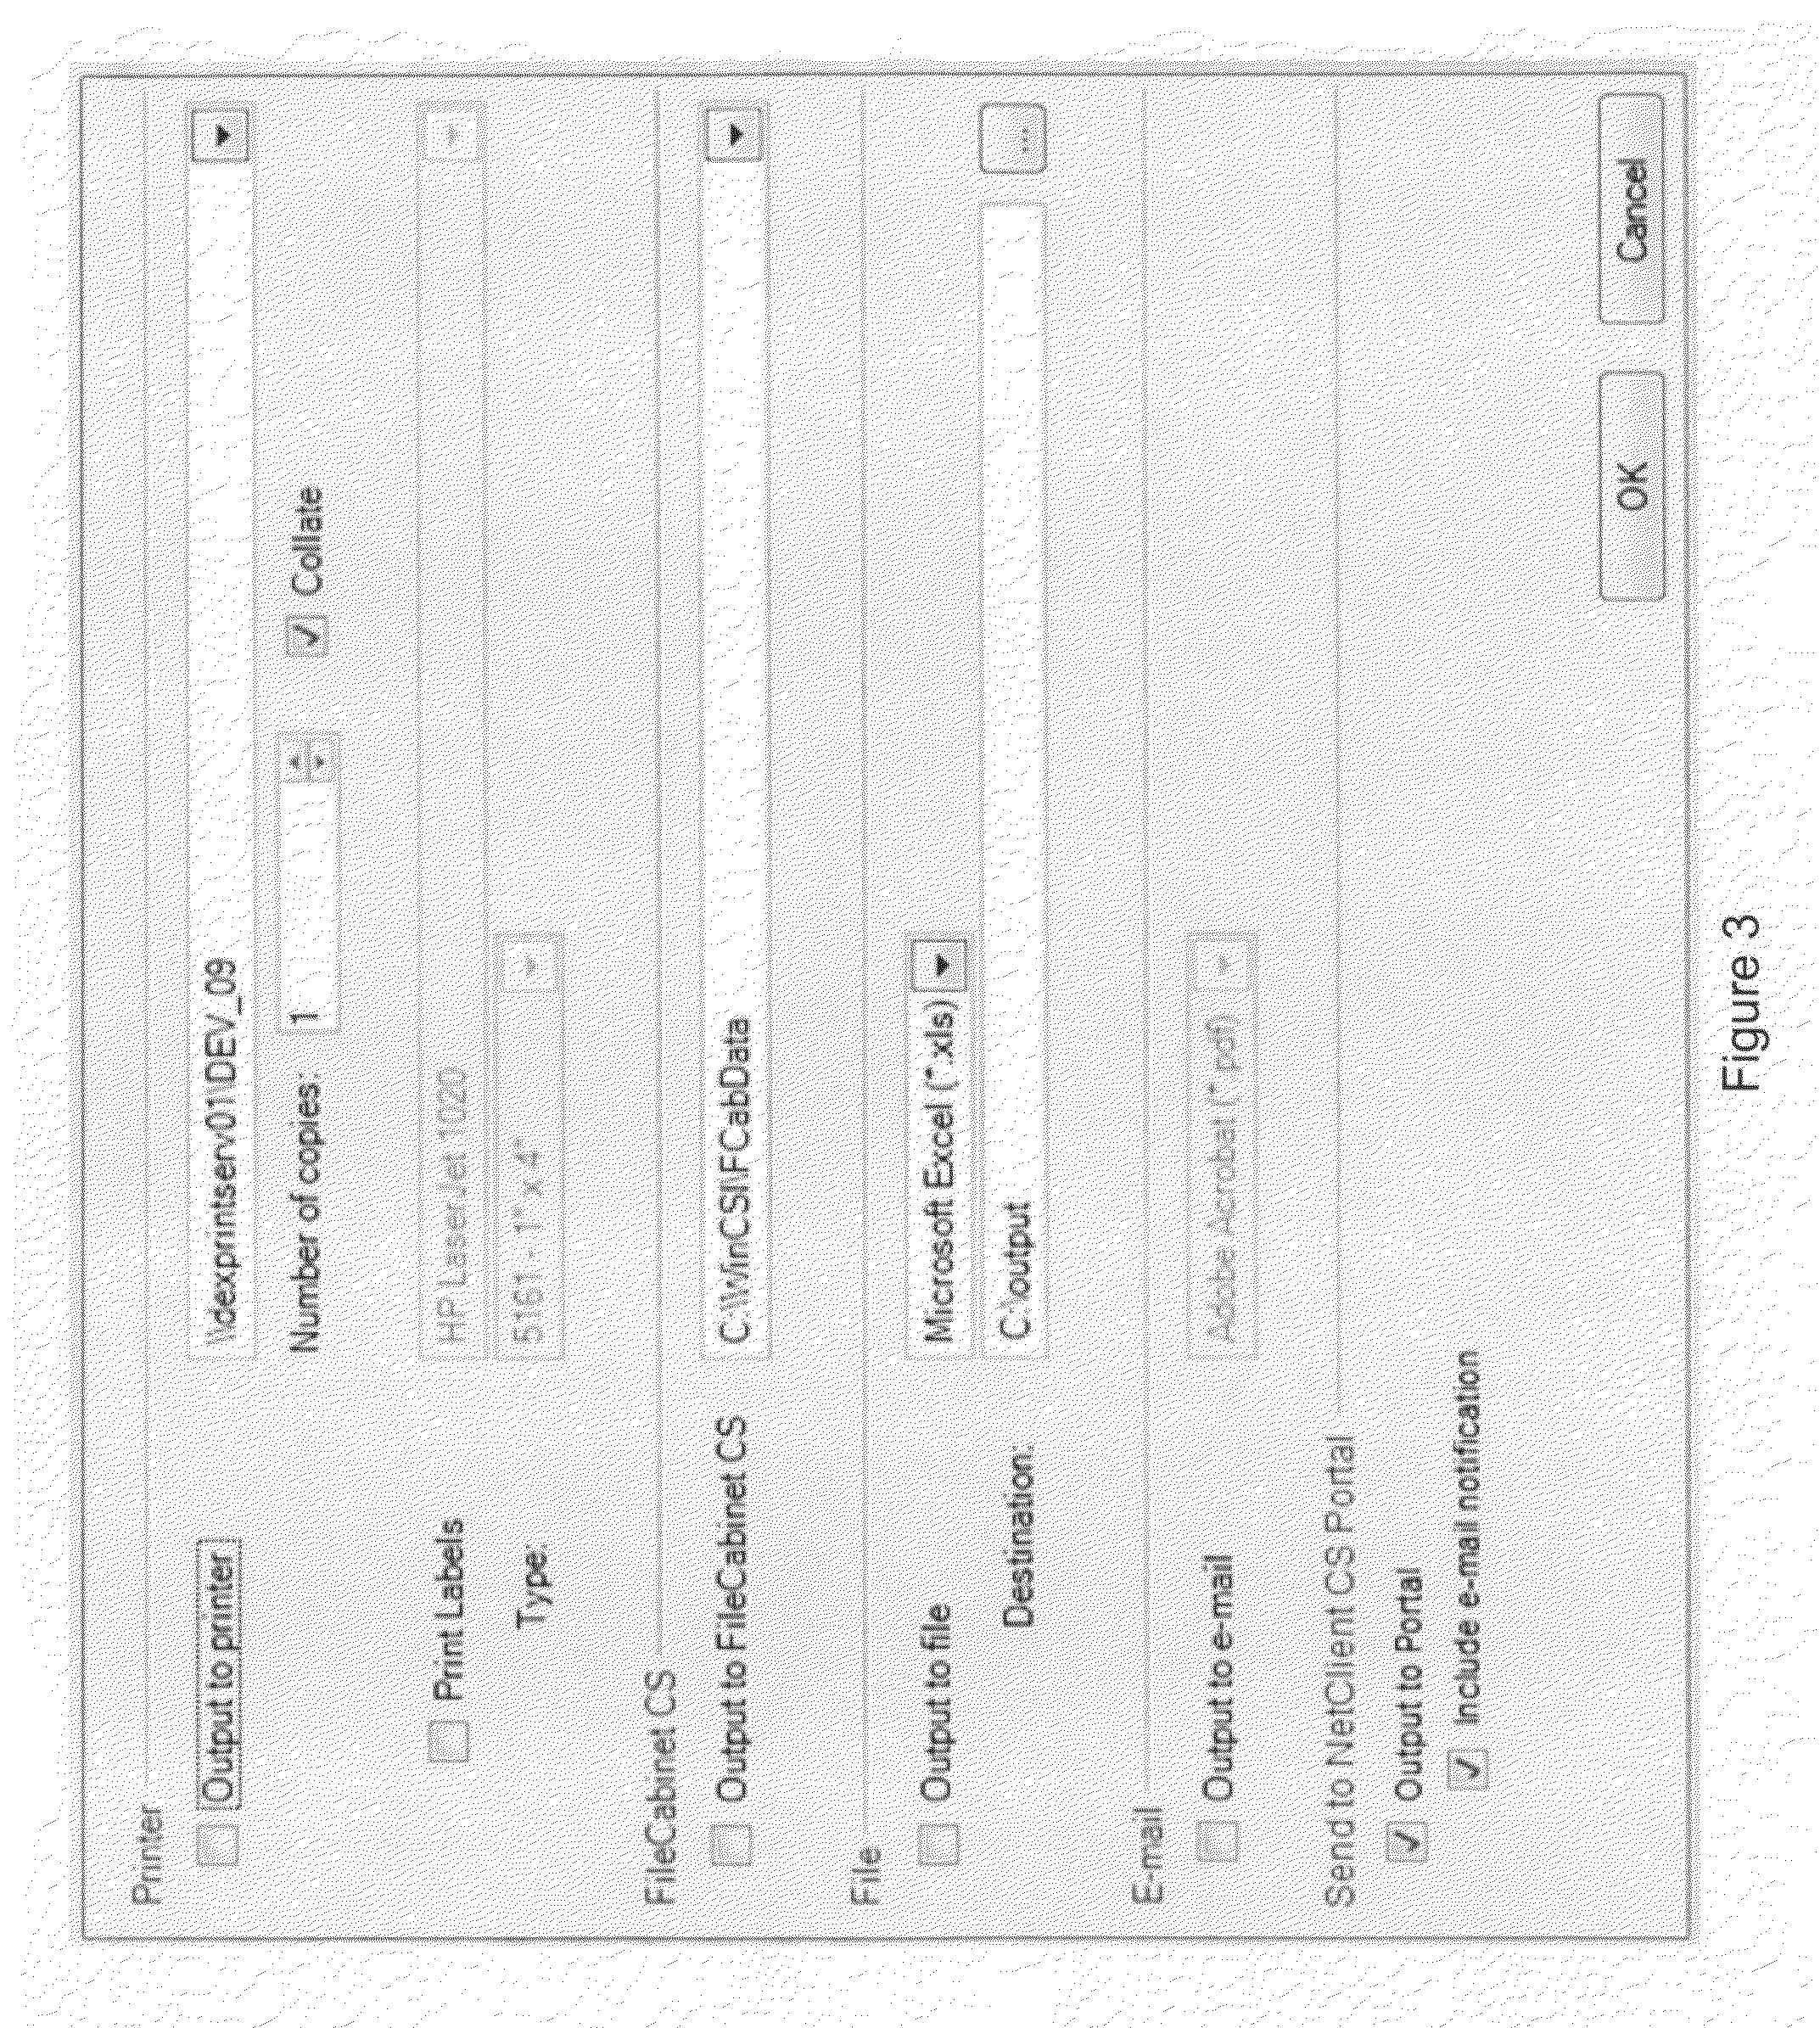 Create Invoices In Excel Word Patent Us  System And Method For Online Bill Payment  2015 Lexus Rx 350 Invoice Price with Aynax Invoice Template Excel Patent Drawing Invoice To You Pdf